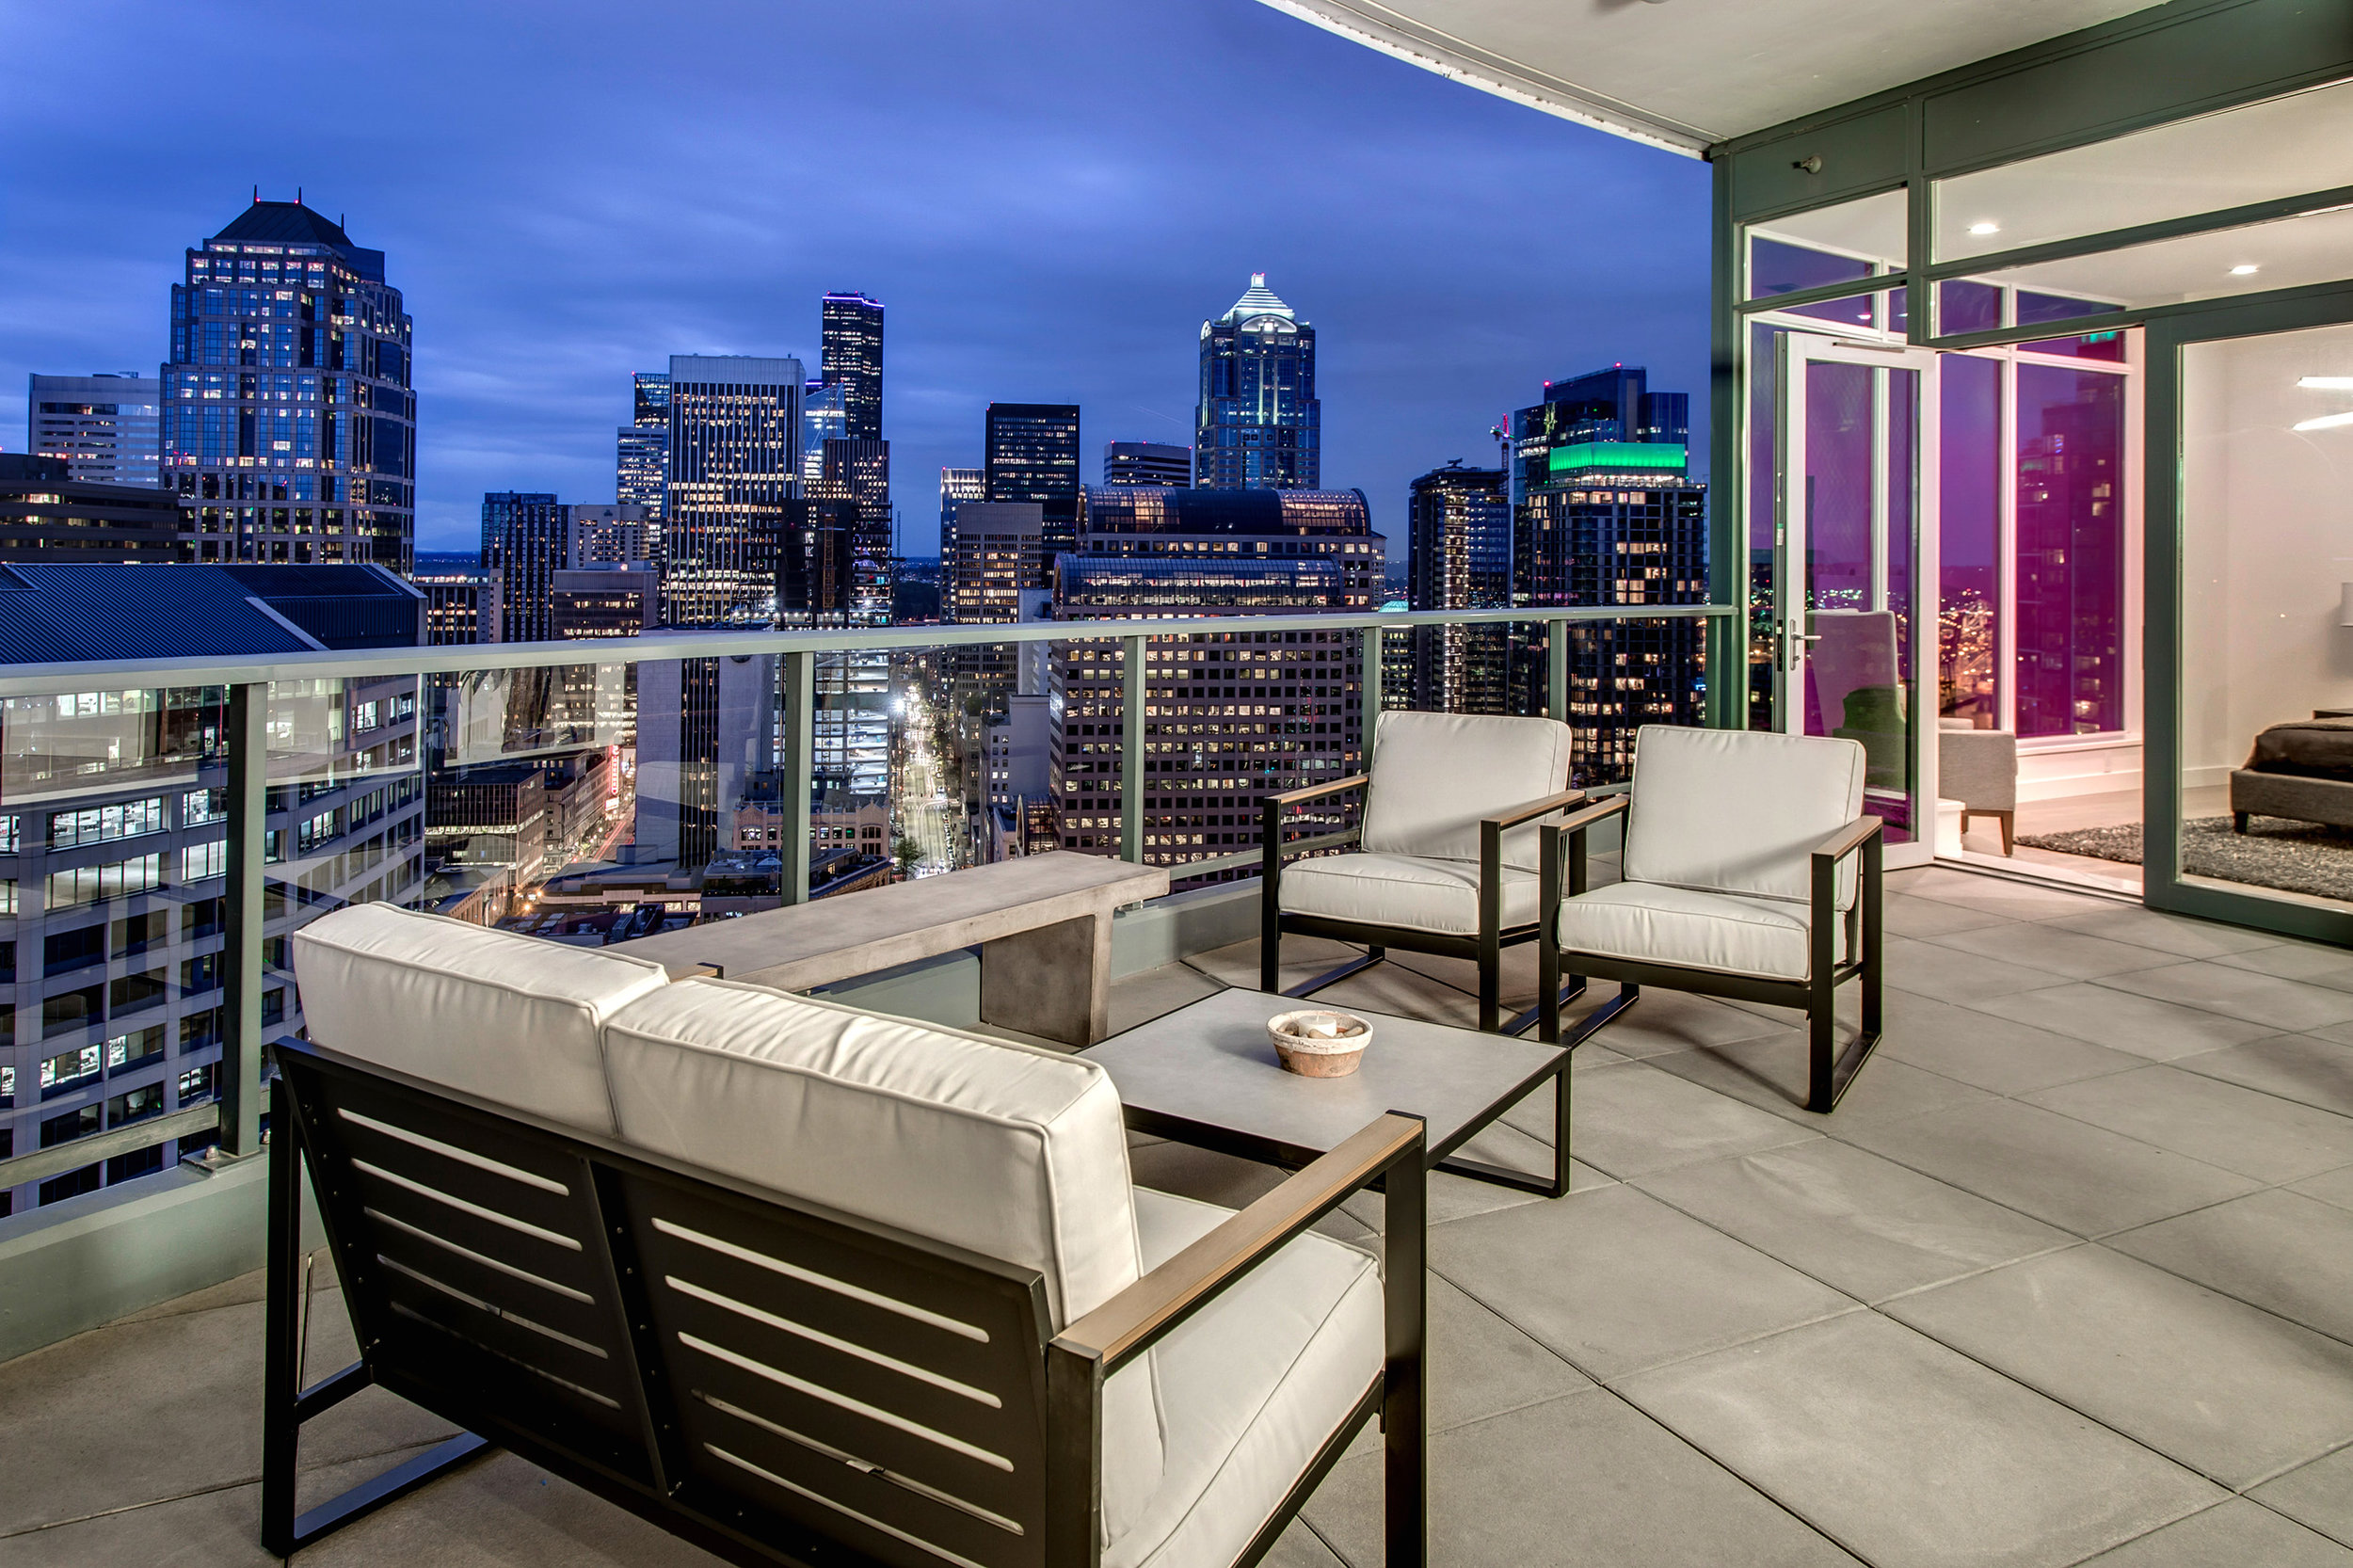 Balcony fit to entertain and admire the city. Perfect for intimate or large gatherings.